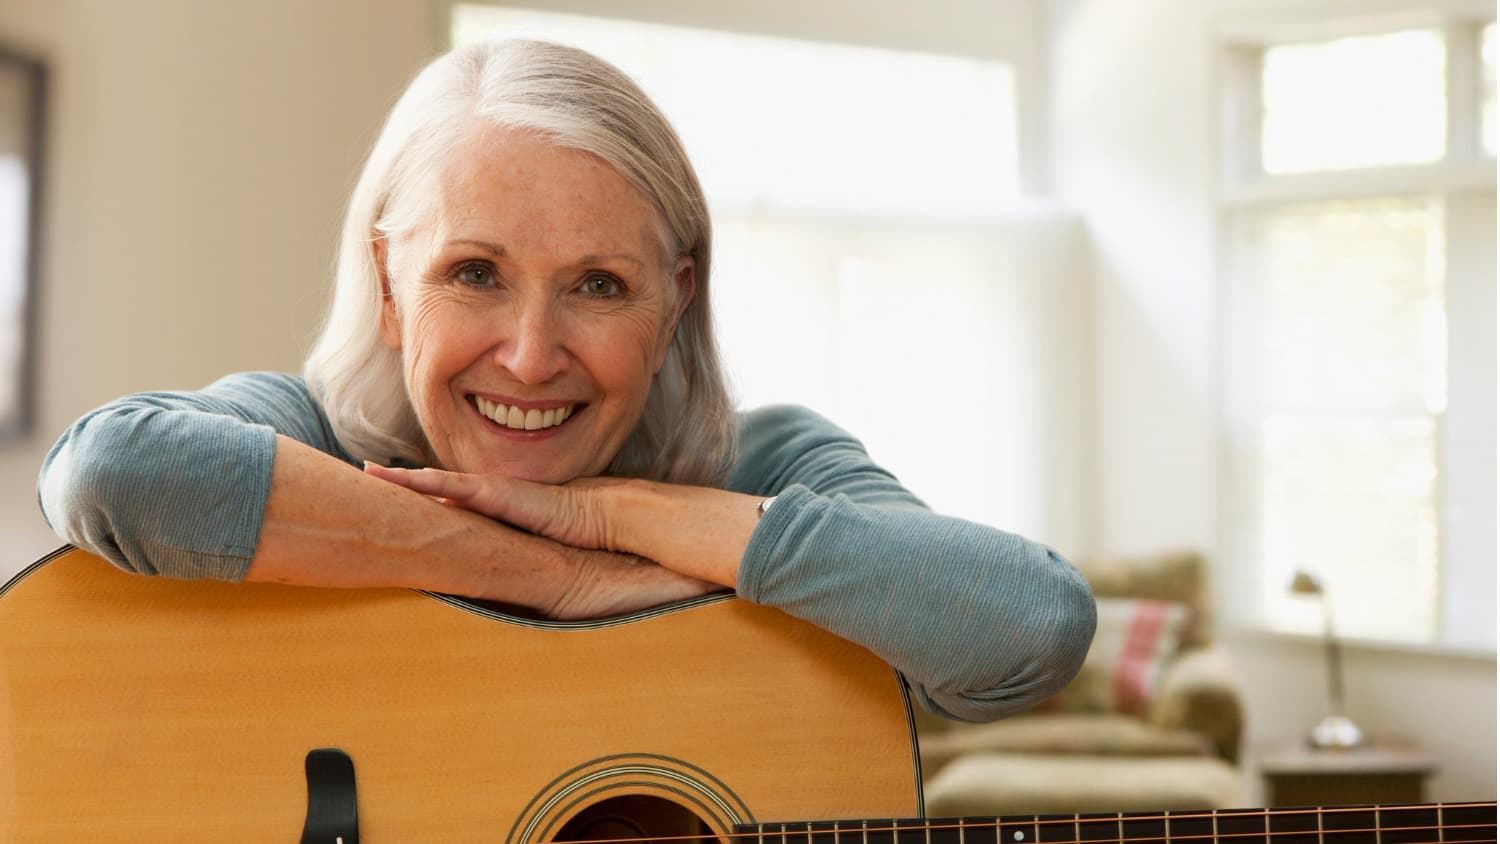 7 Routine Exercises to Keep Dementia at Bay